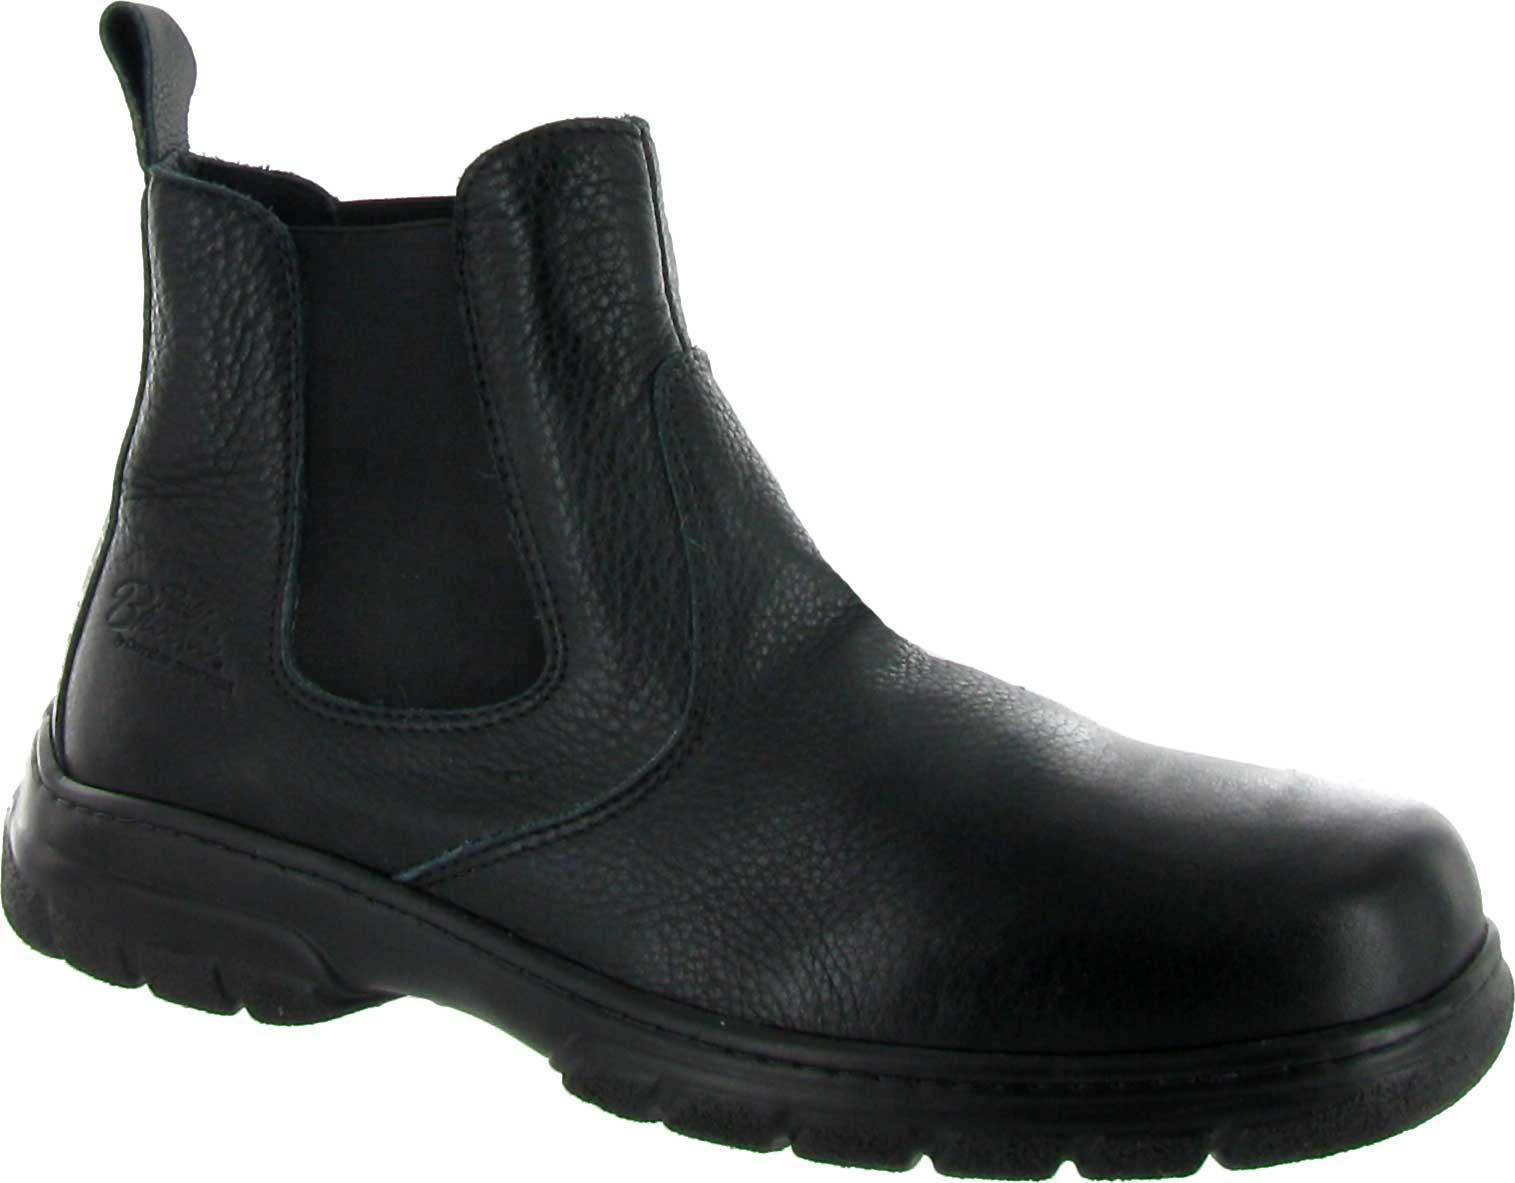 Men's Paul Brodie Double Gore Boot - Black